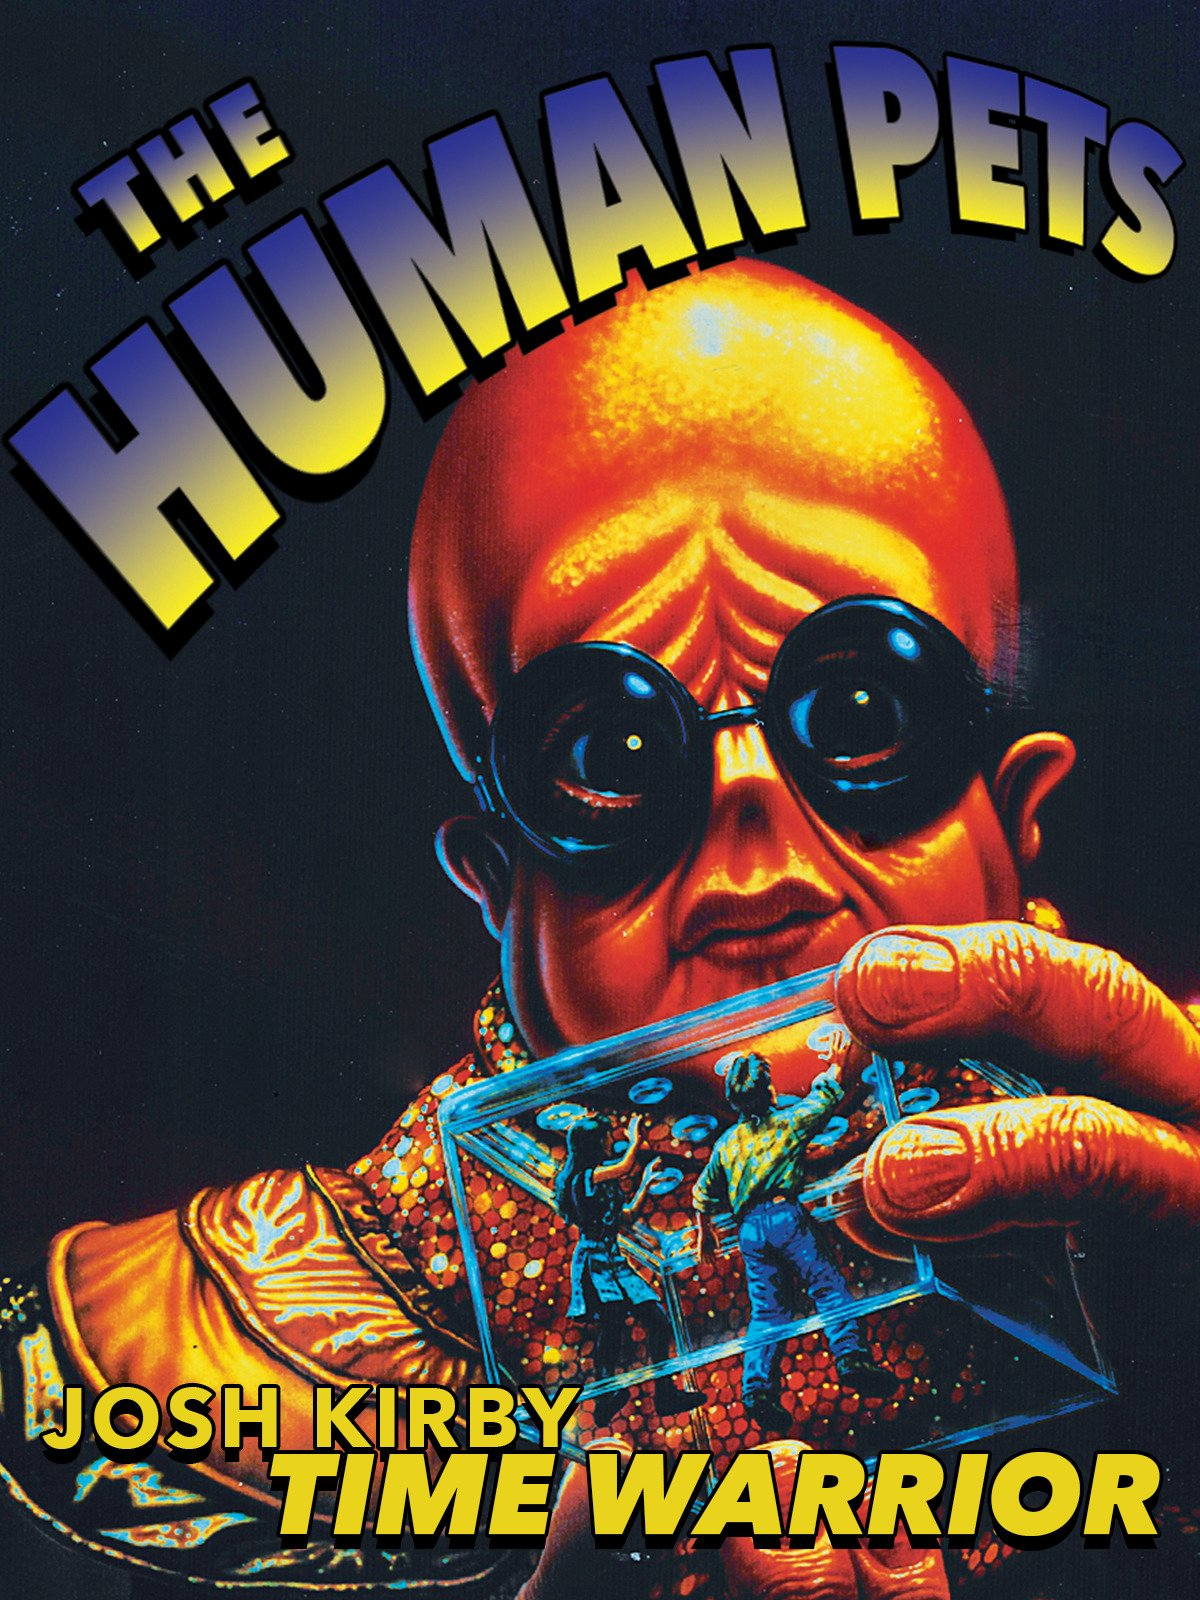 Josh Kirby Time Warrior: The Human Pets